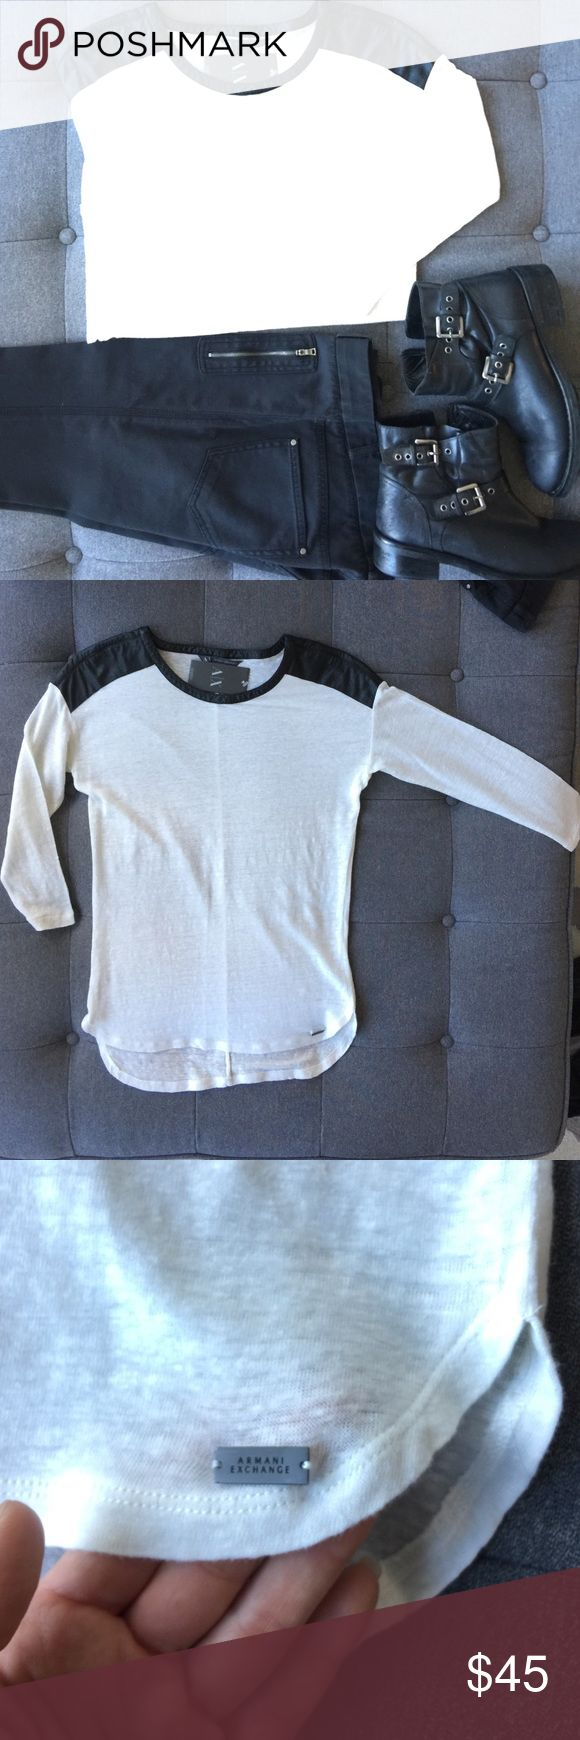 Armani Exchange Baseball T-Shirt Off white with faux leather shoulders and neck trim. Style is like baseball jersey. 3/4 sleeves, longer in the back. Slim fit. Gorgeous with jeans or leggings. Never worn. I also have one in grey for sale. See listings. A/X Armani Exchange Tops Tees - Long Sleeve